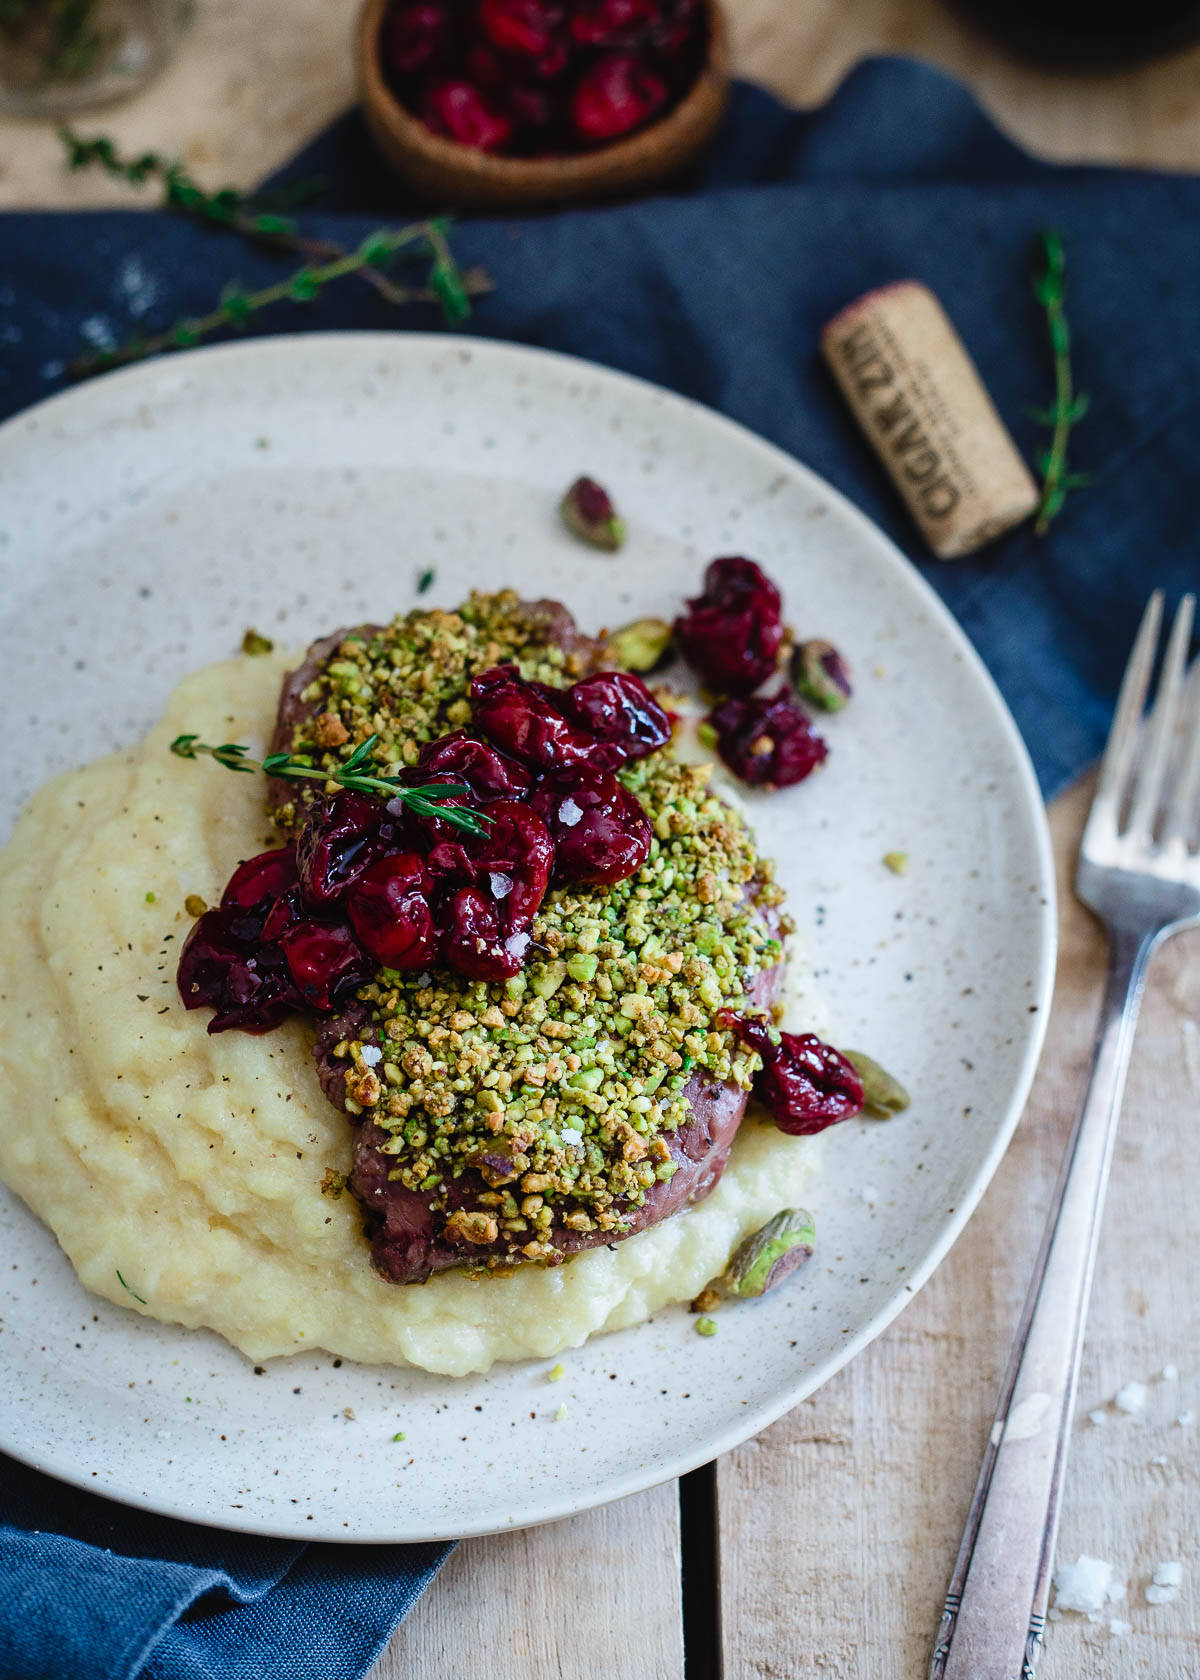 Pistachio crusted lamb chops are topped with a simple red wine cherry sauce and served over creamy parmesan polenta. It's fancy food made simple and perfect for a special Valentine's Day dinner.